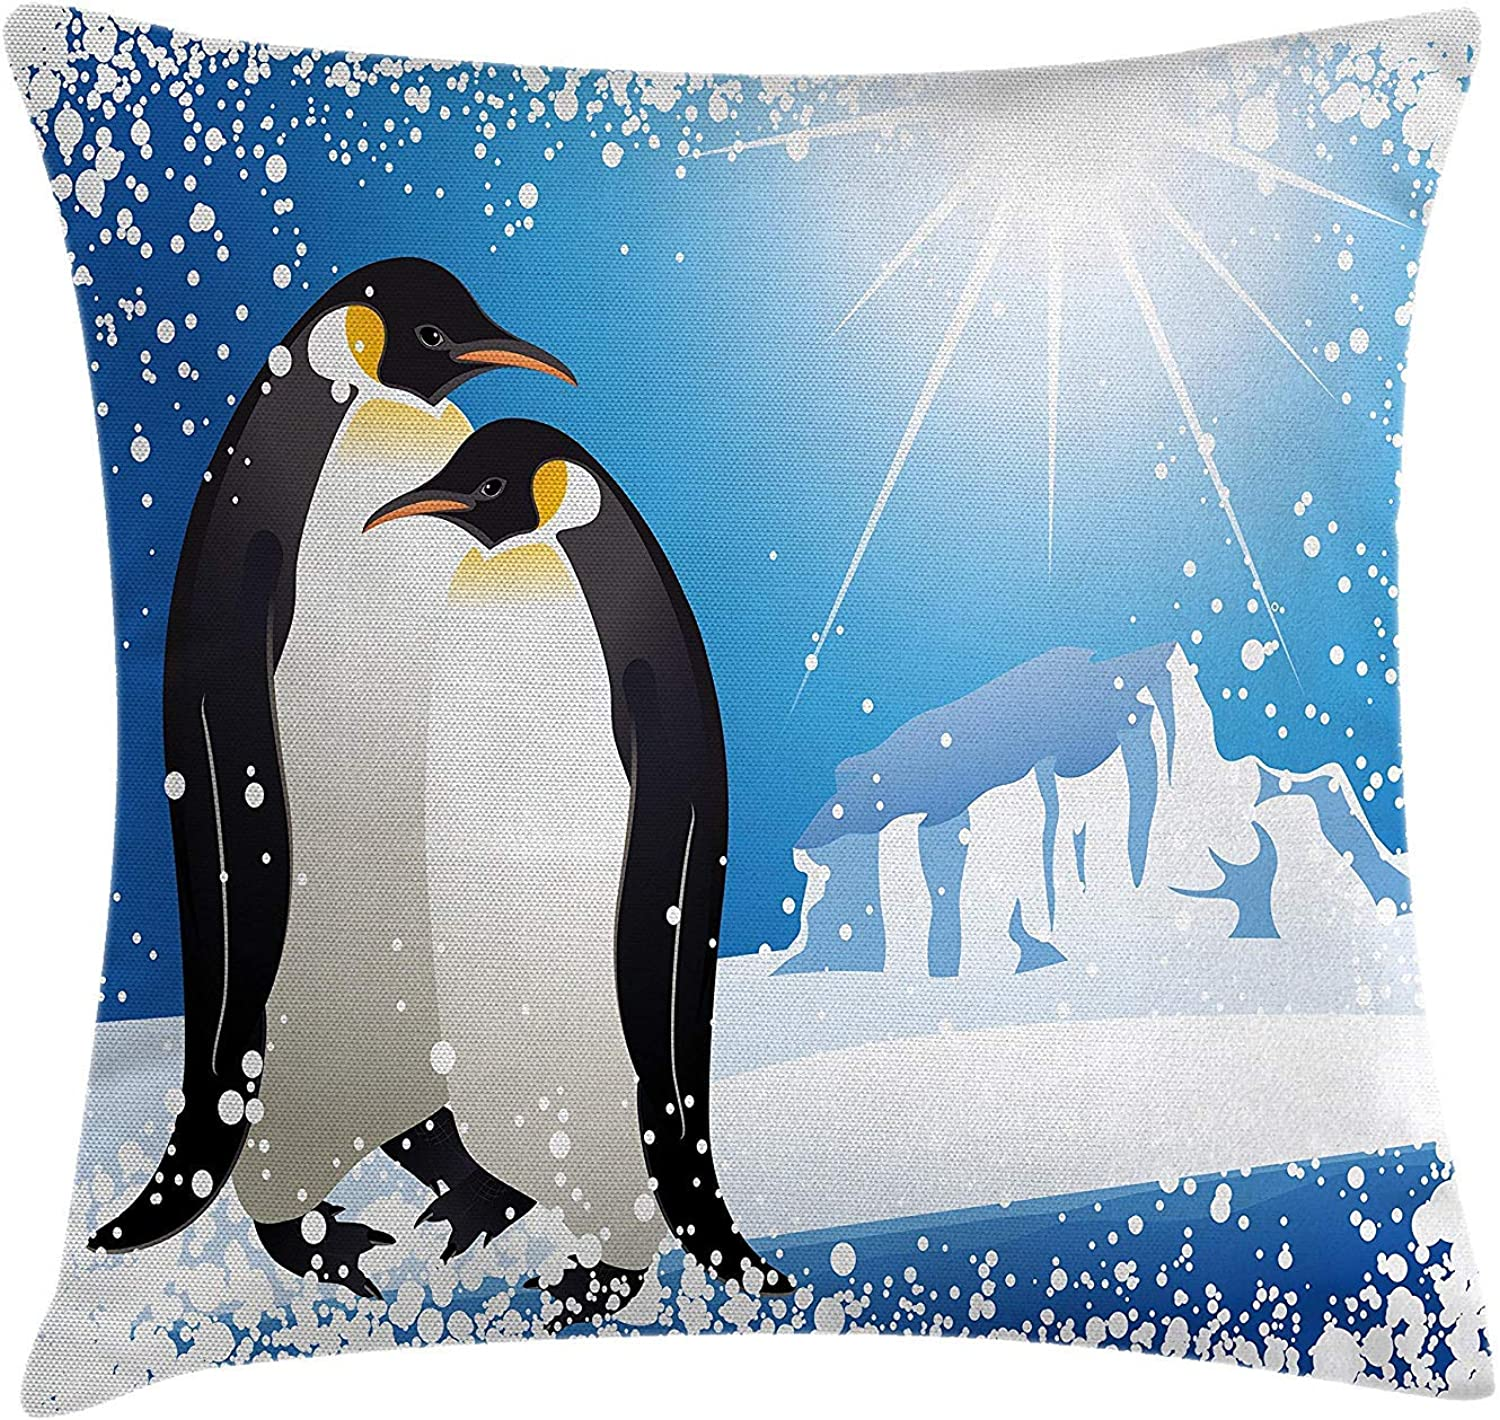 Winter Throw Pillow Cushion Cover,20 x 59 inch Two Sides, Cute Penguins on Iceland at Arctic Snowy Frozen Climate Kids Illustration,Pillow Sham Cases for Couch Sofa Chair Cushion